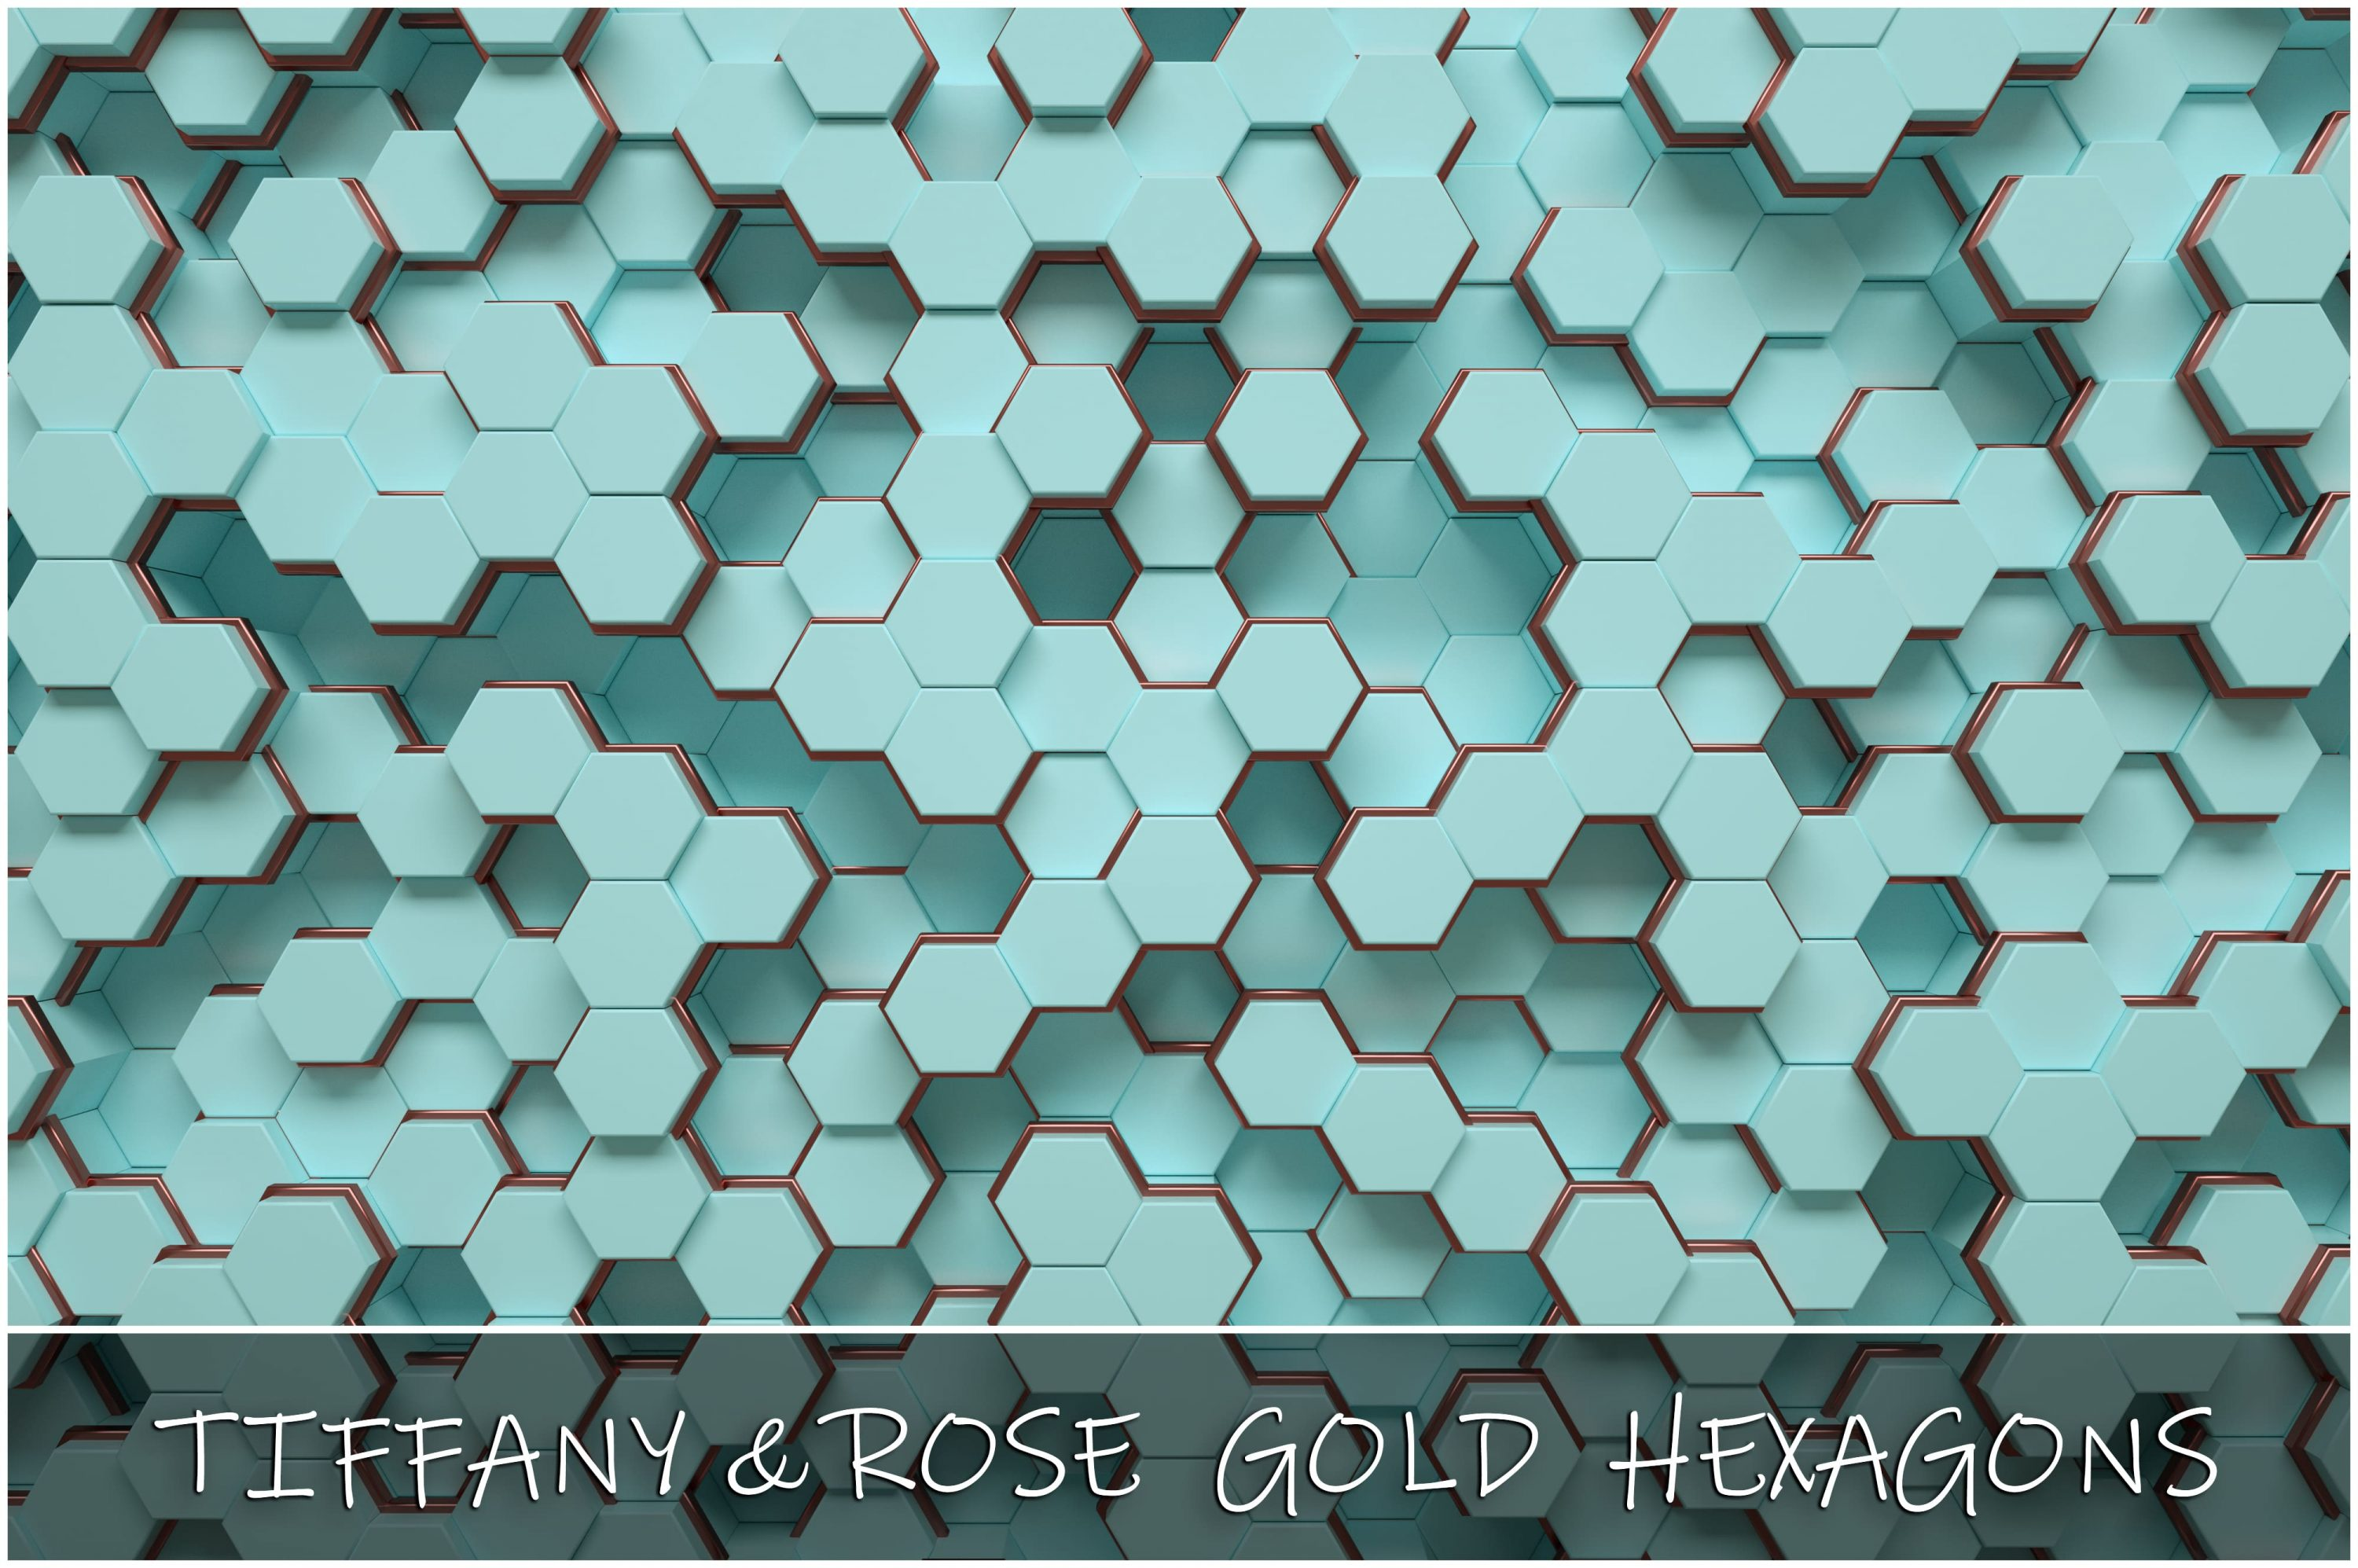 Tiffany & Rose Gold Hexagon Backgrounds - 30 main